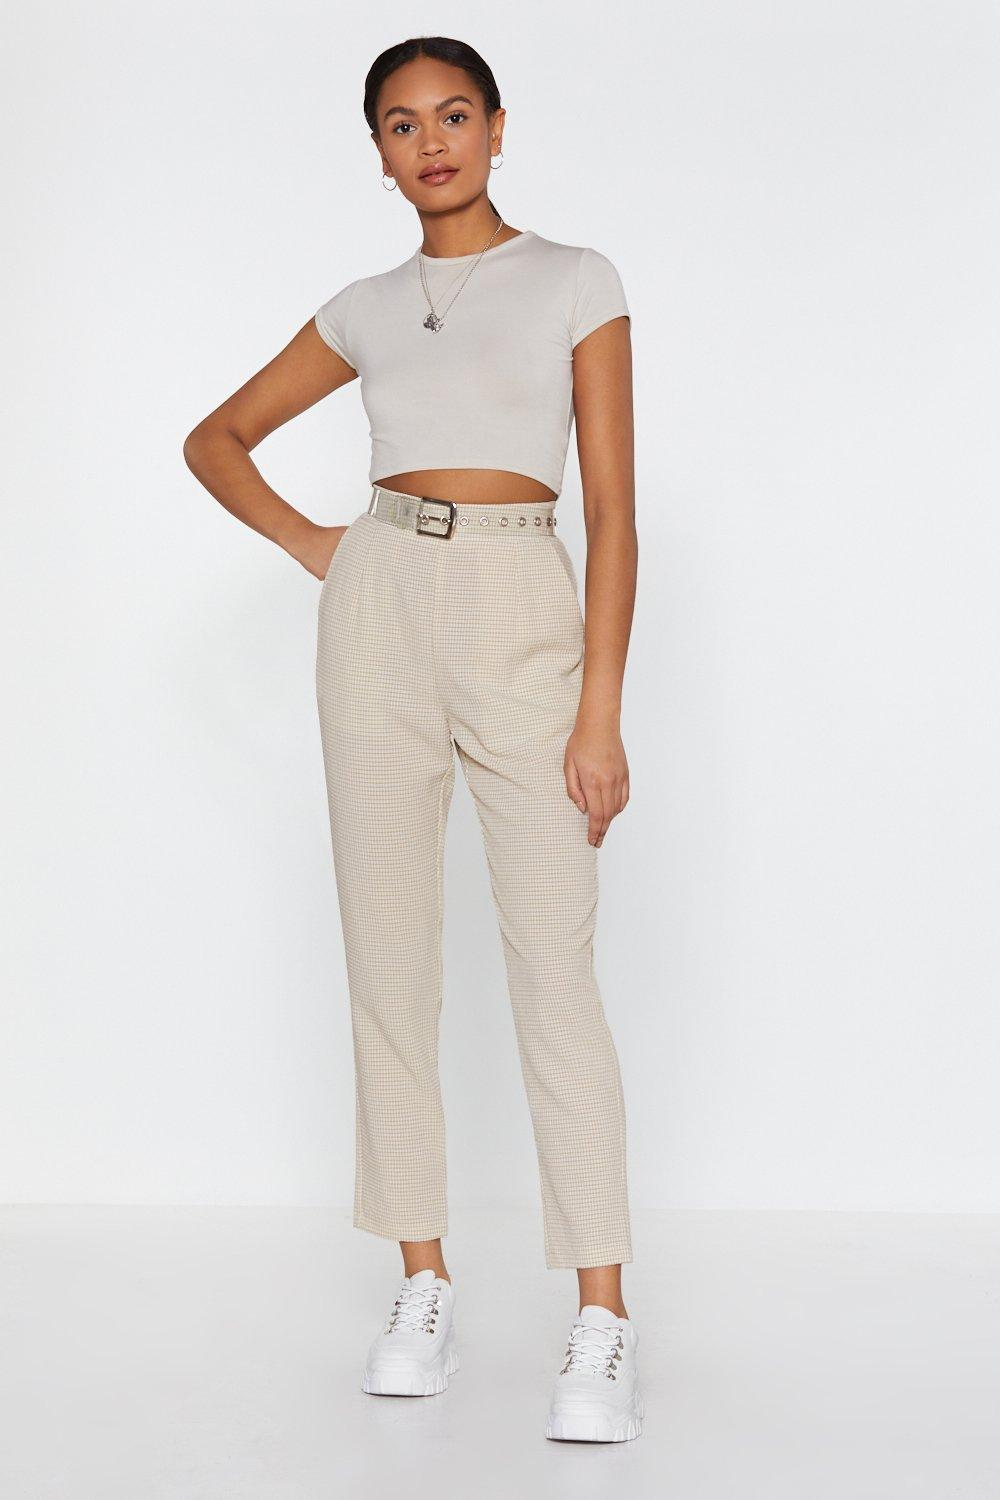 Better Late Than Taper Check High-Waisted Pants | Shop Clothes at Nasty Gal!